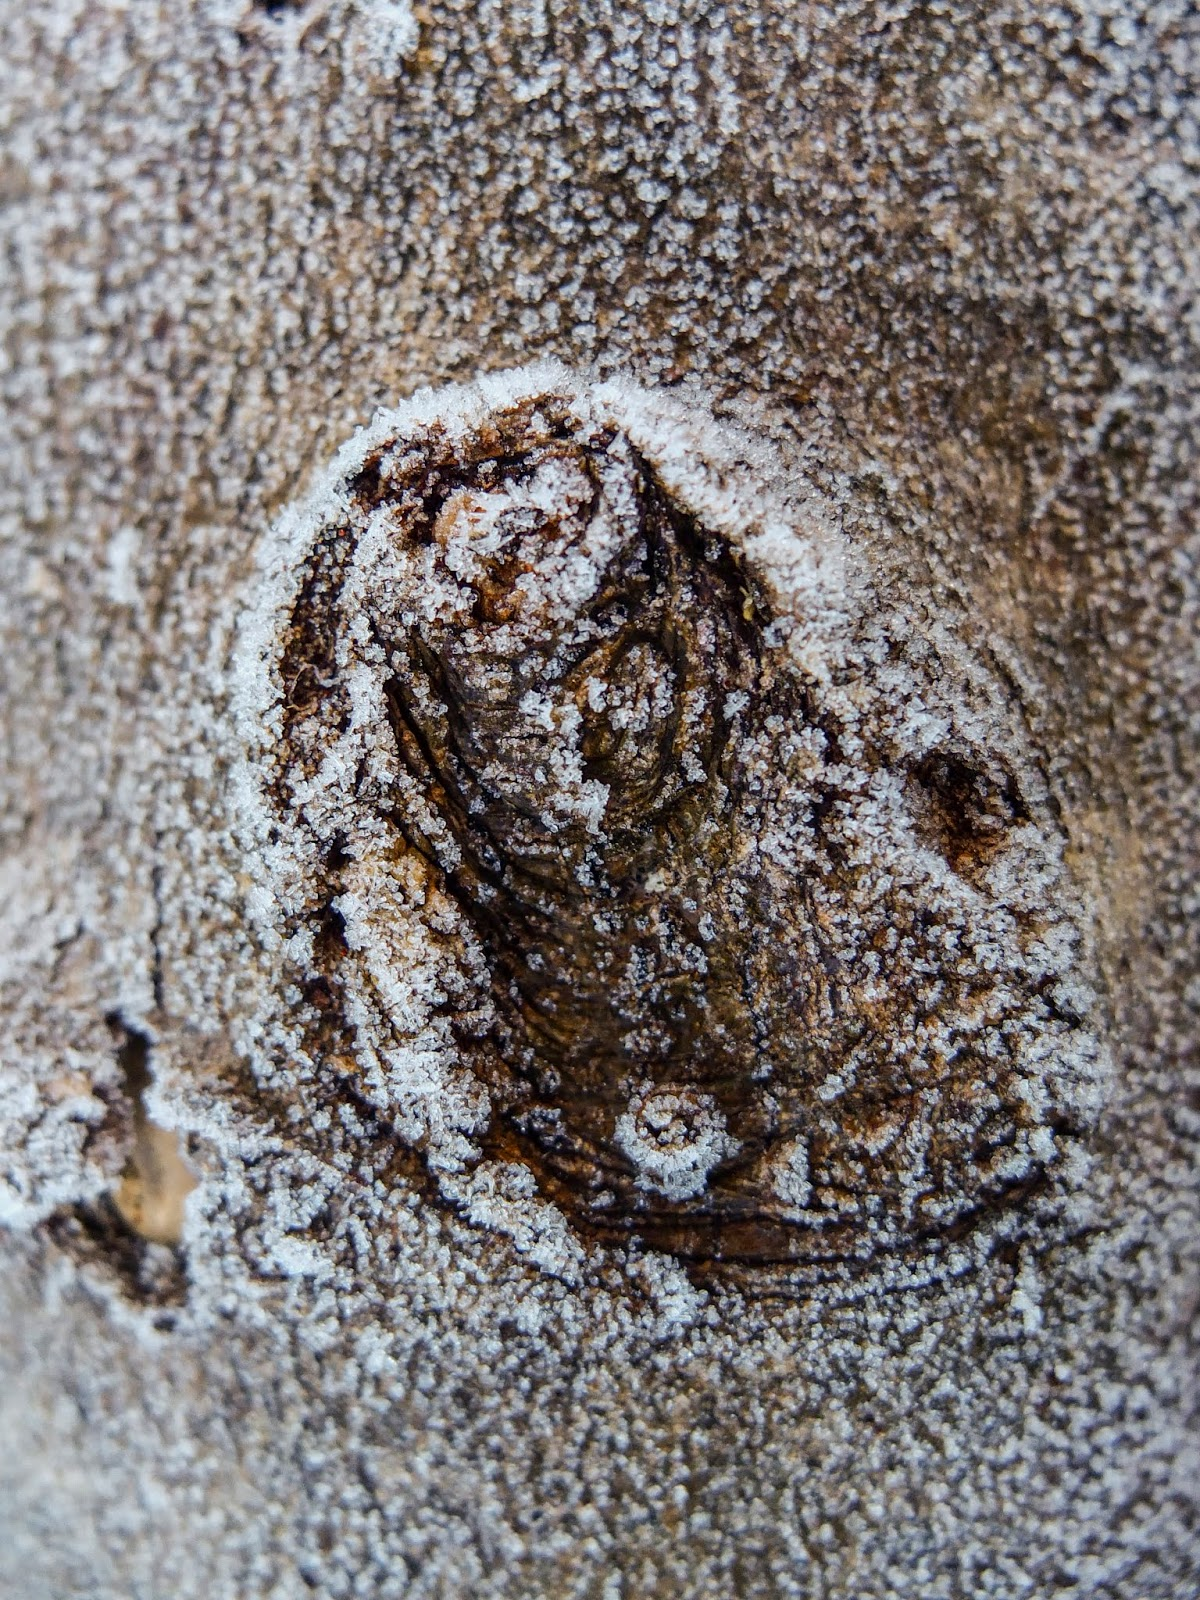 A close up of a frost covered knot on a tree trunk.